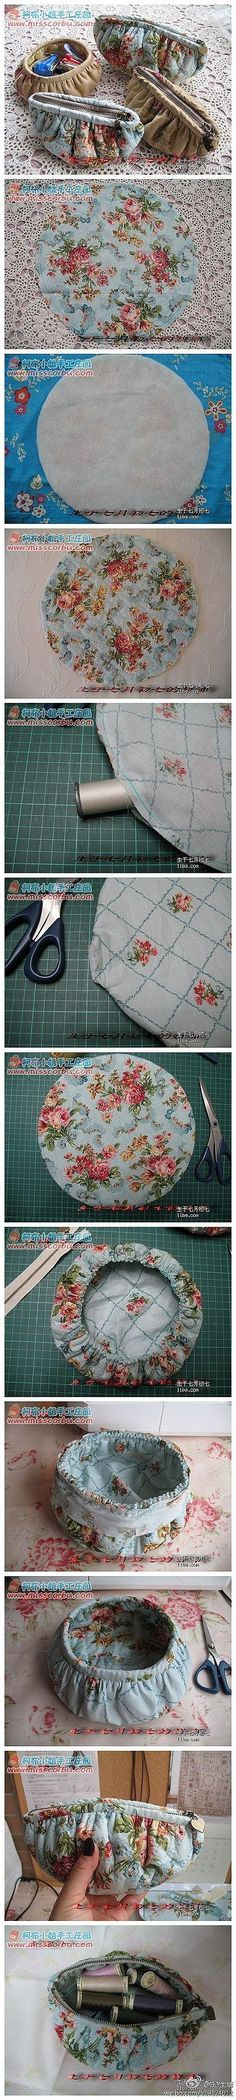 circle pouch. Shabby chic from vintage 80's Laura Ashley prints, bedding or dresses.